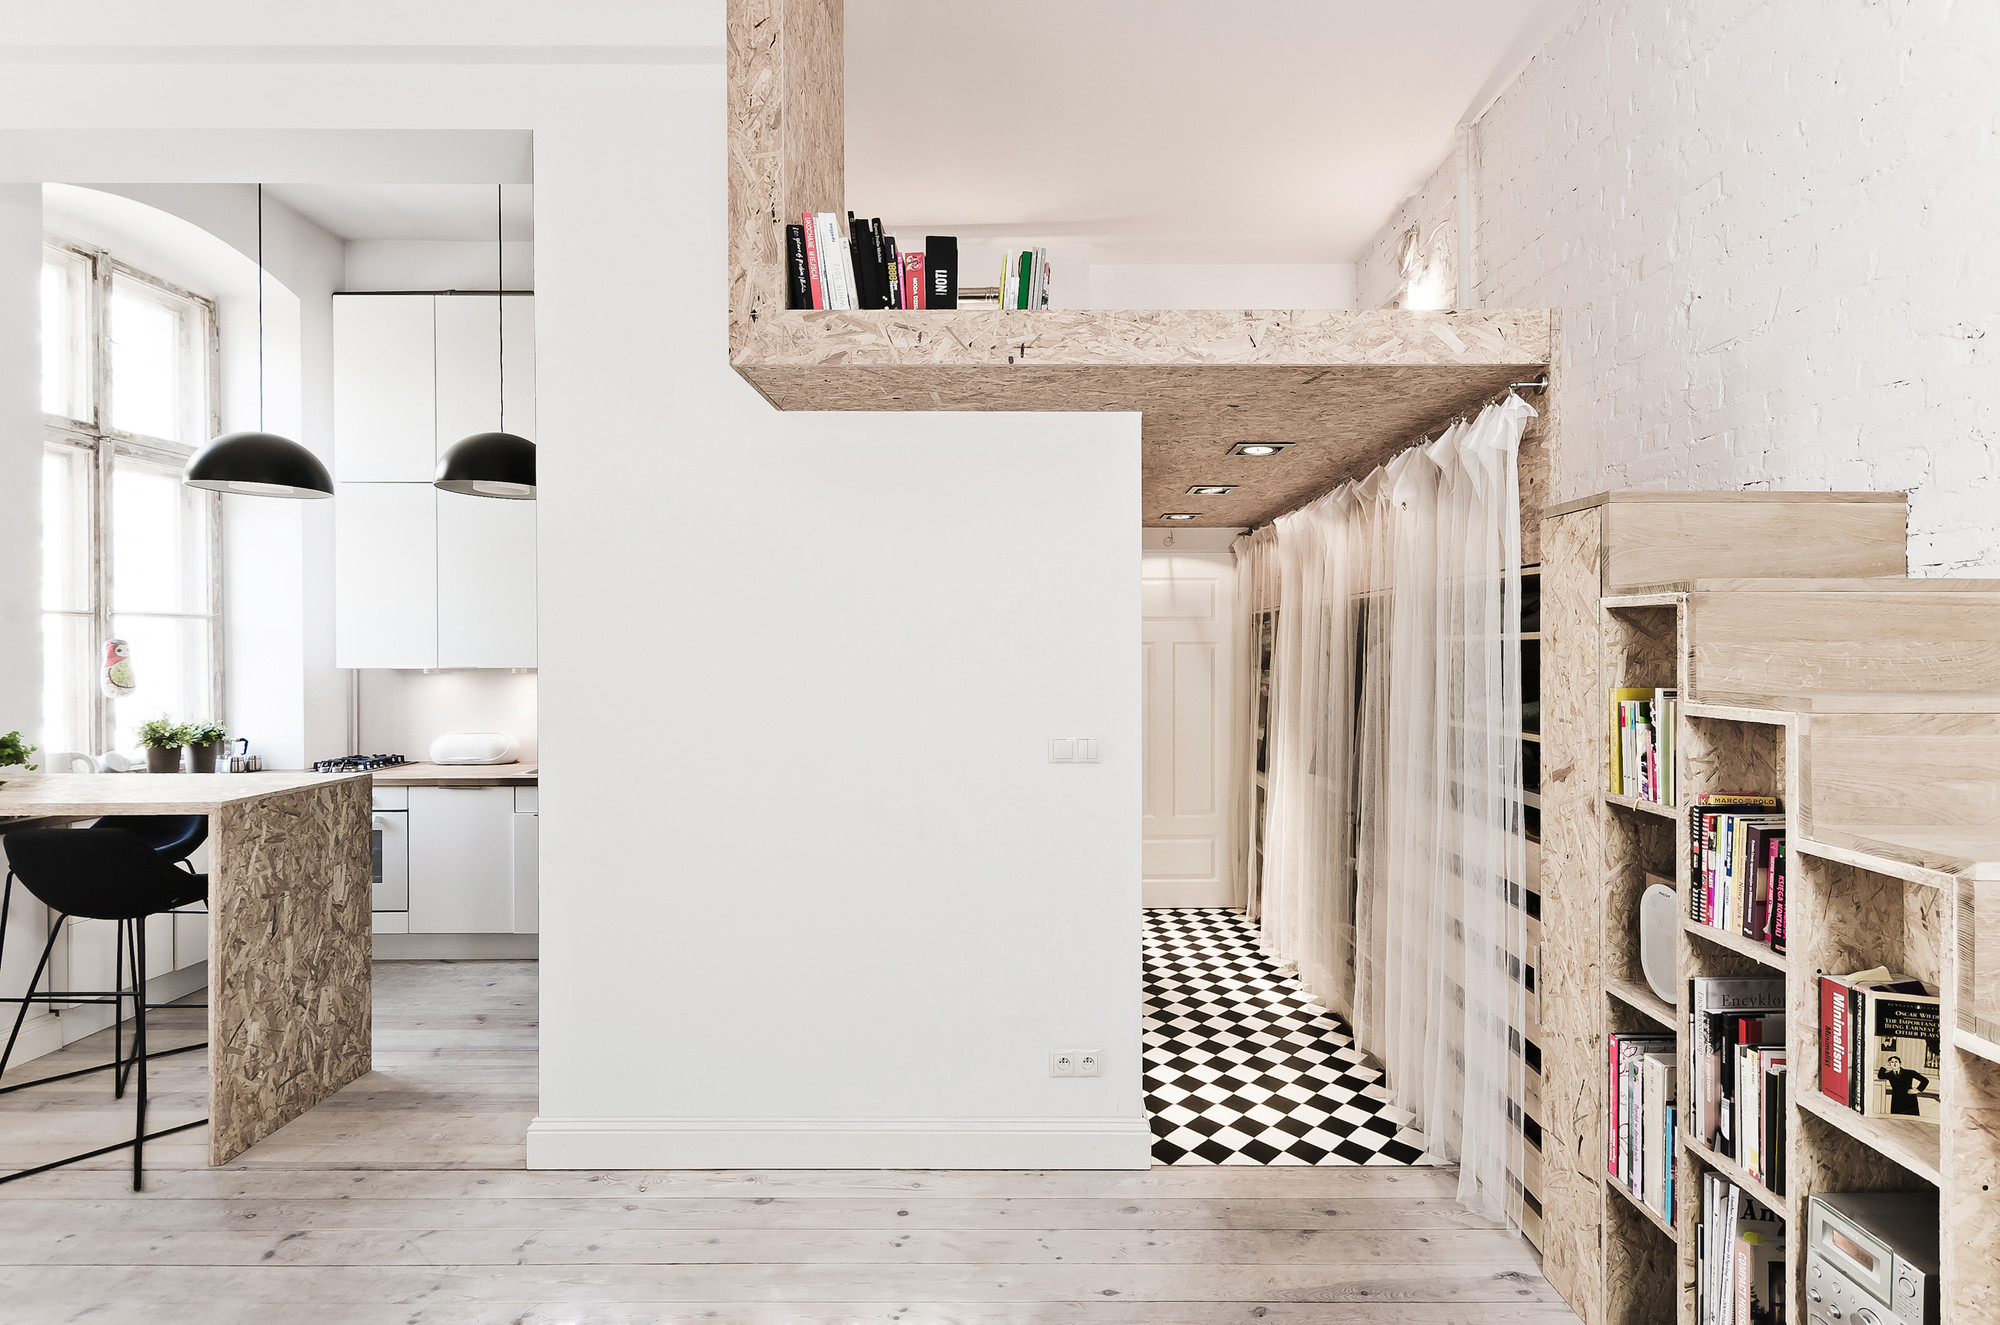 29 sqm 3xa 1 OSB Was Used To Build a Mezzanine in This Tiny 29m² Apartment